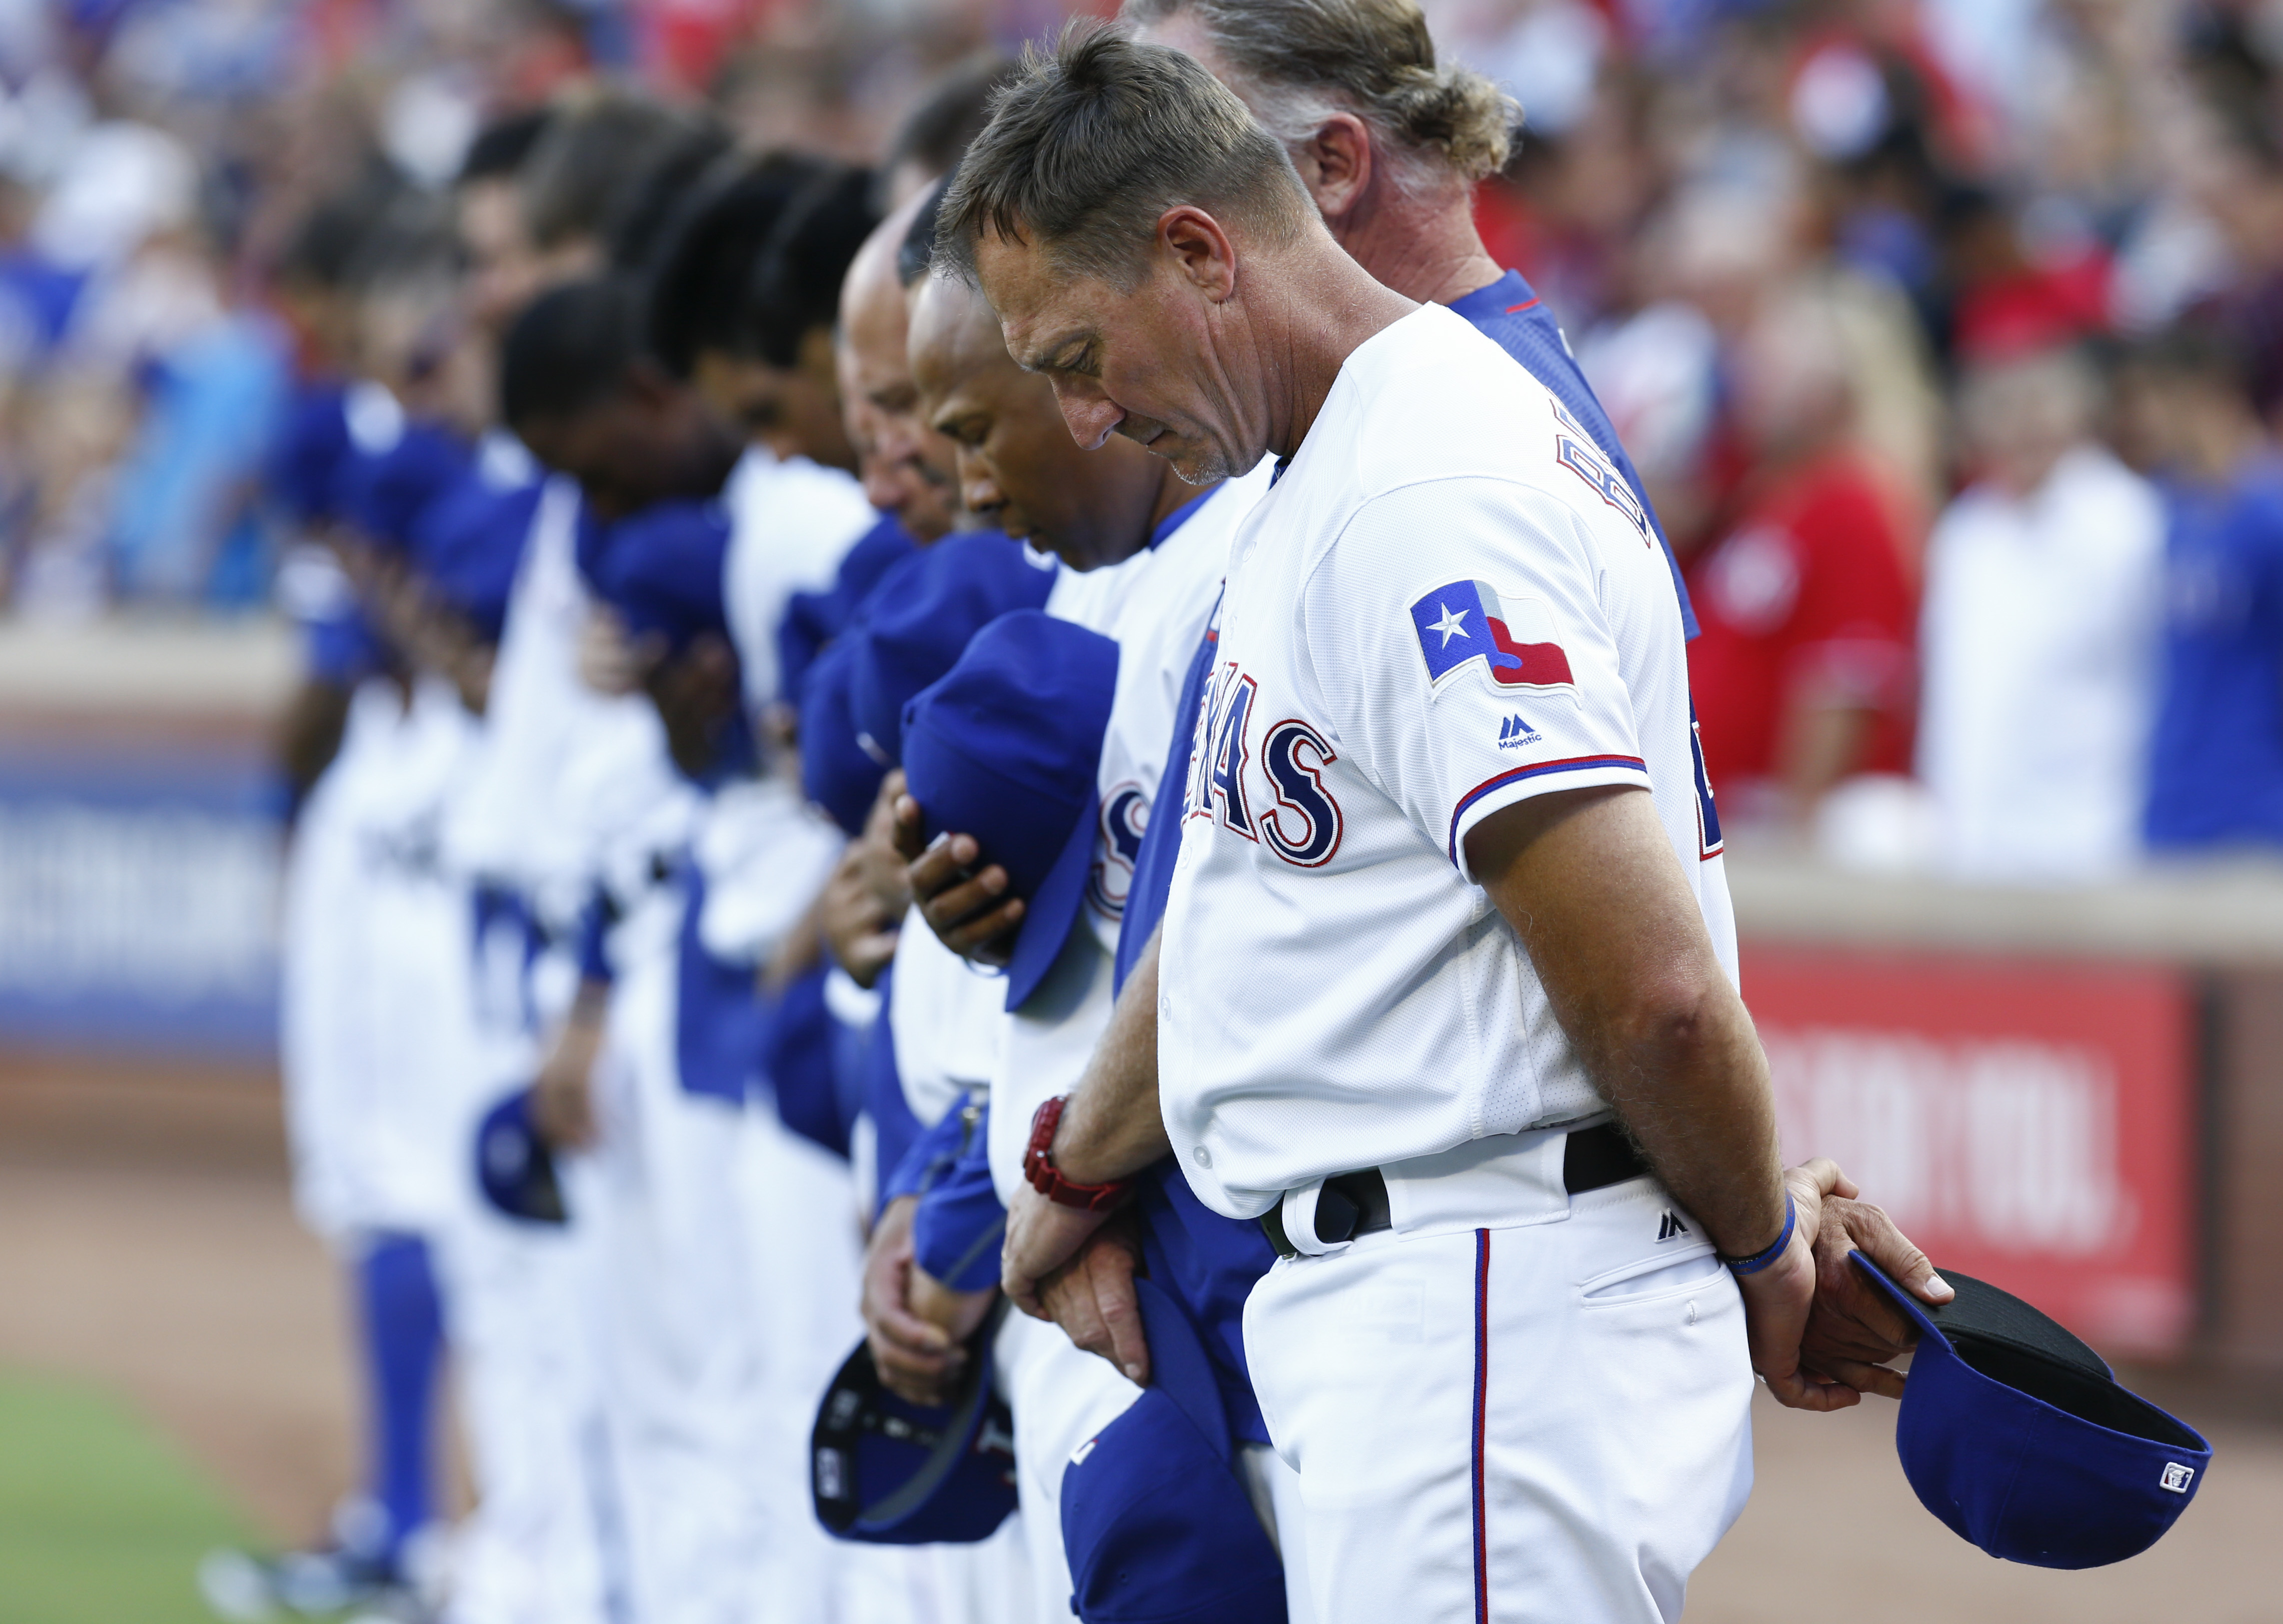 Members of the Texas Rangers including manager Jeff Banister observe a moment of silence, in remembrance of the people killed and injured in Dallas, before a baseball game against the Minnesota Twins at Globe Life Park, Friday, July 8, 2016, in Arlington,